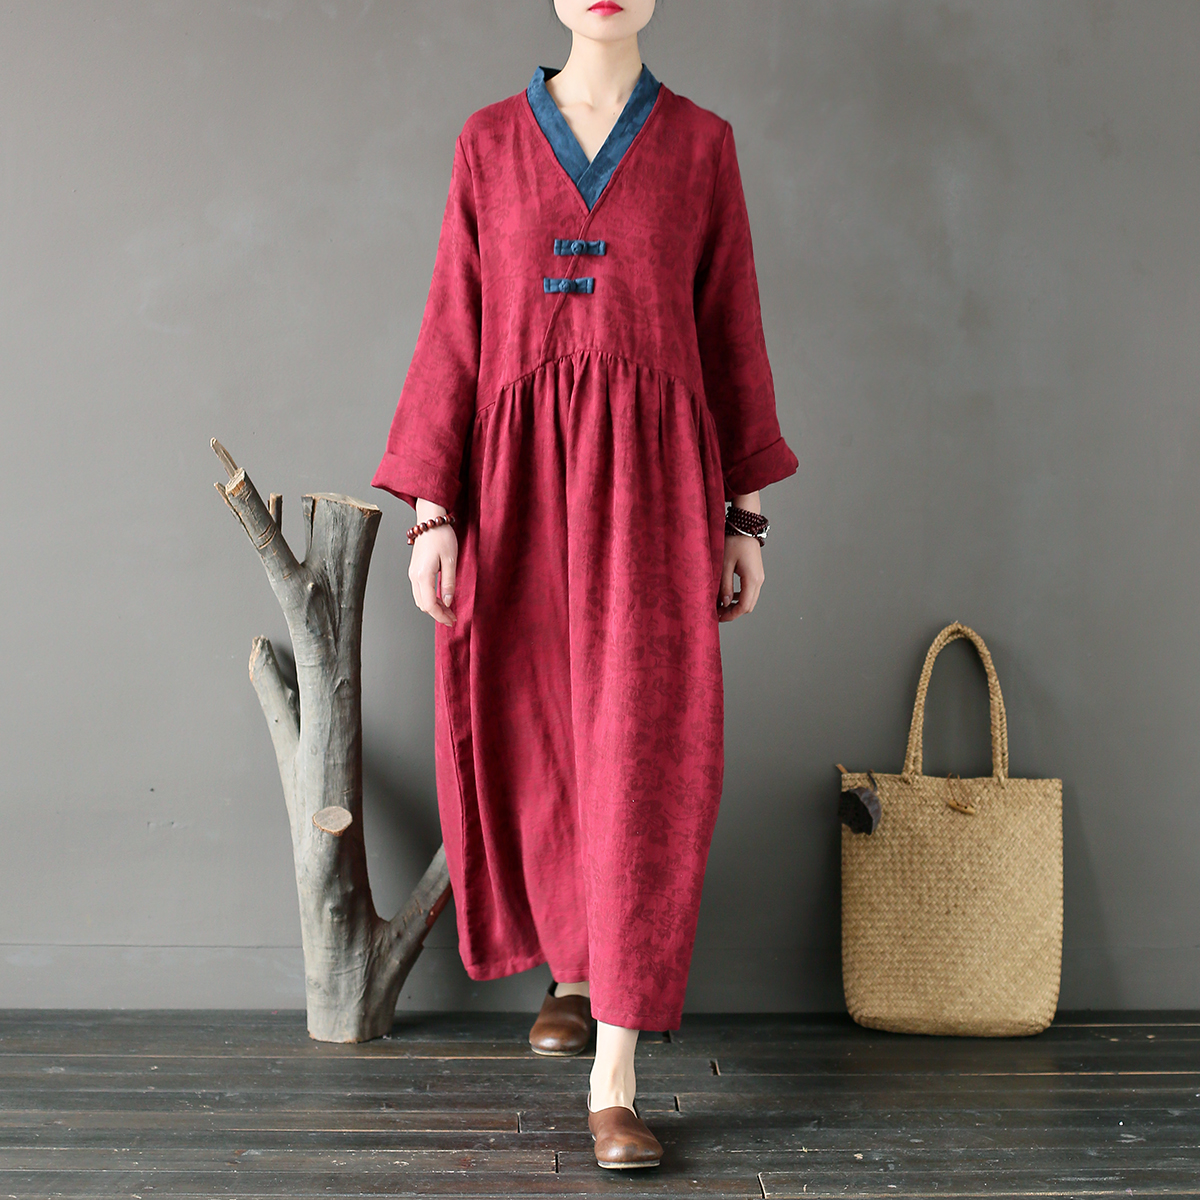 Johnature New Vintage V Neck Full Sleeve High Waist Robe Dresses 2019 Spring Women Solid Color